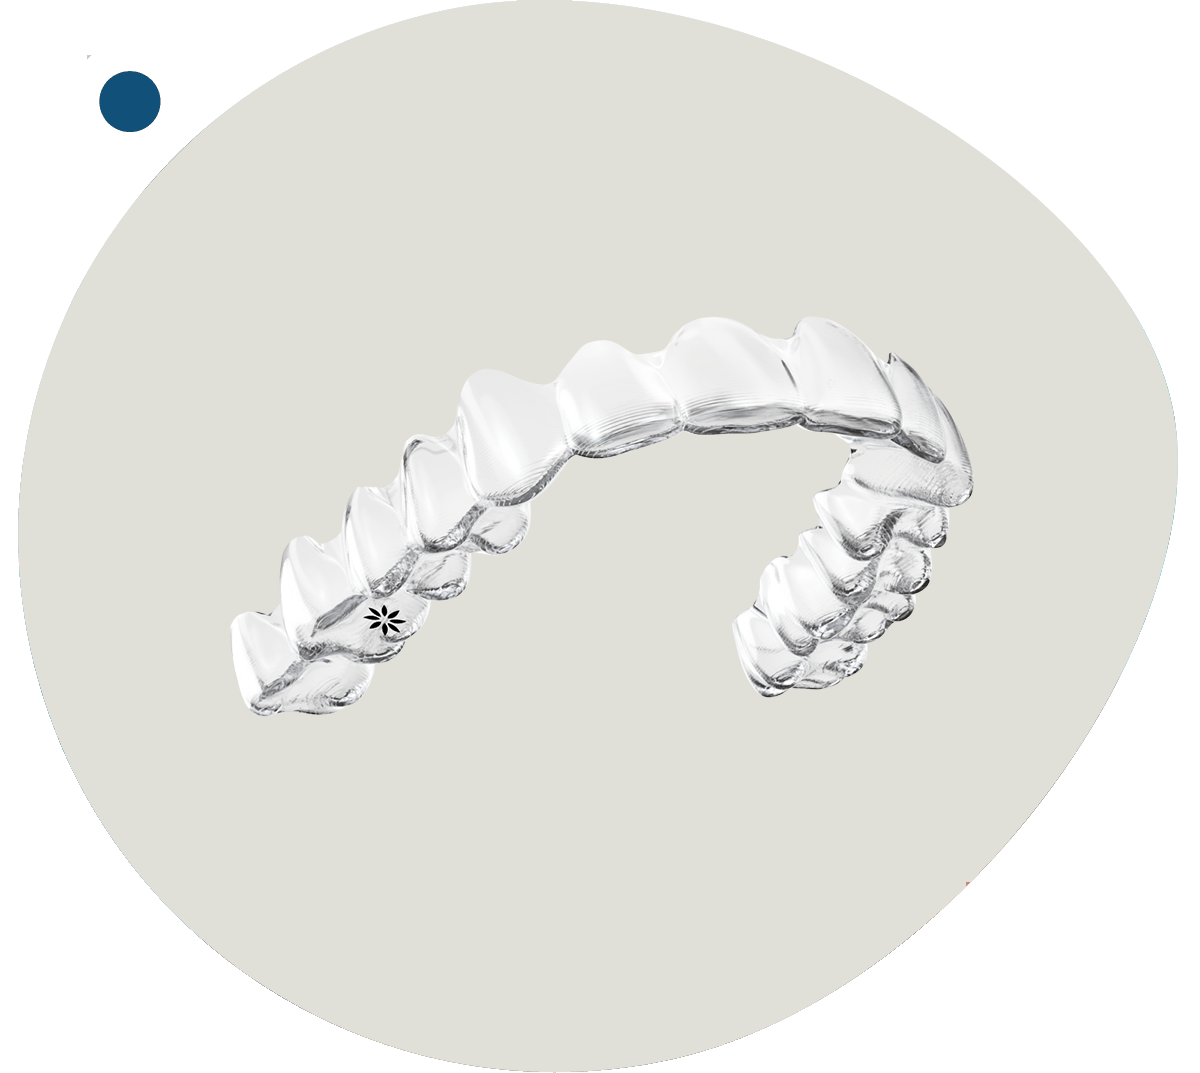 https://kfo-duebendorf.ch/wp-content/uploads/2020/11/invisalign.png